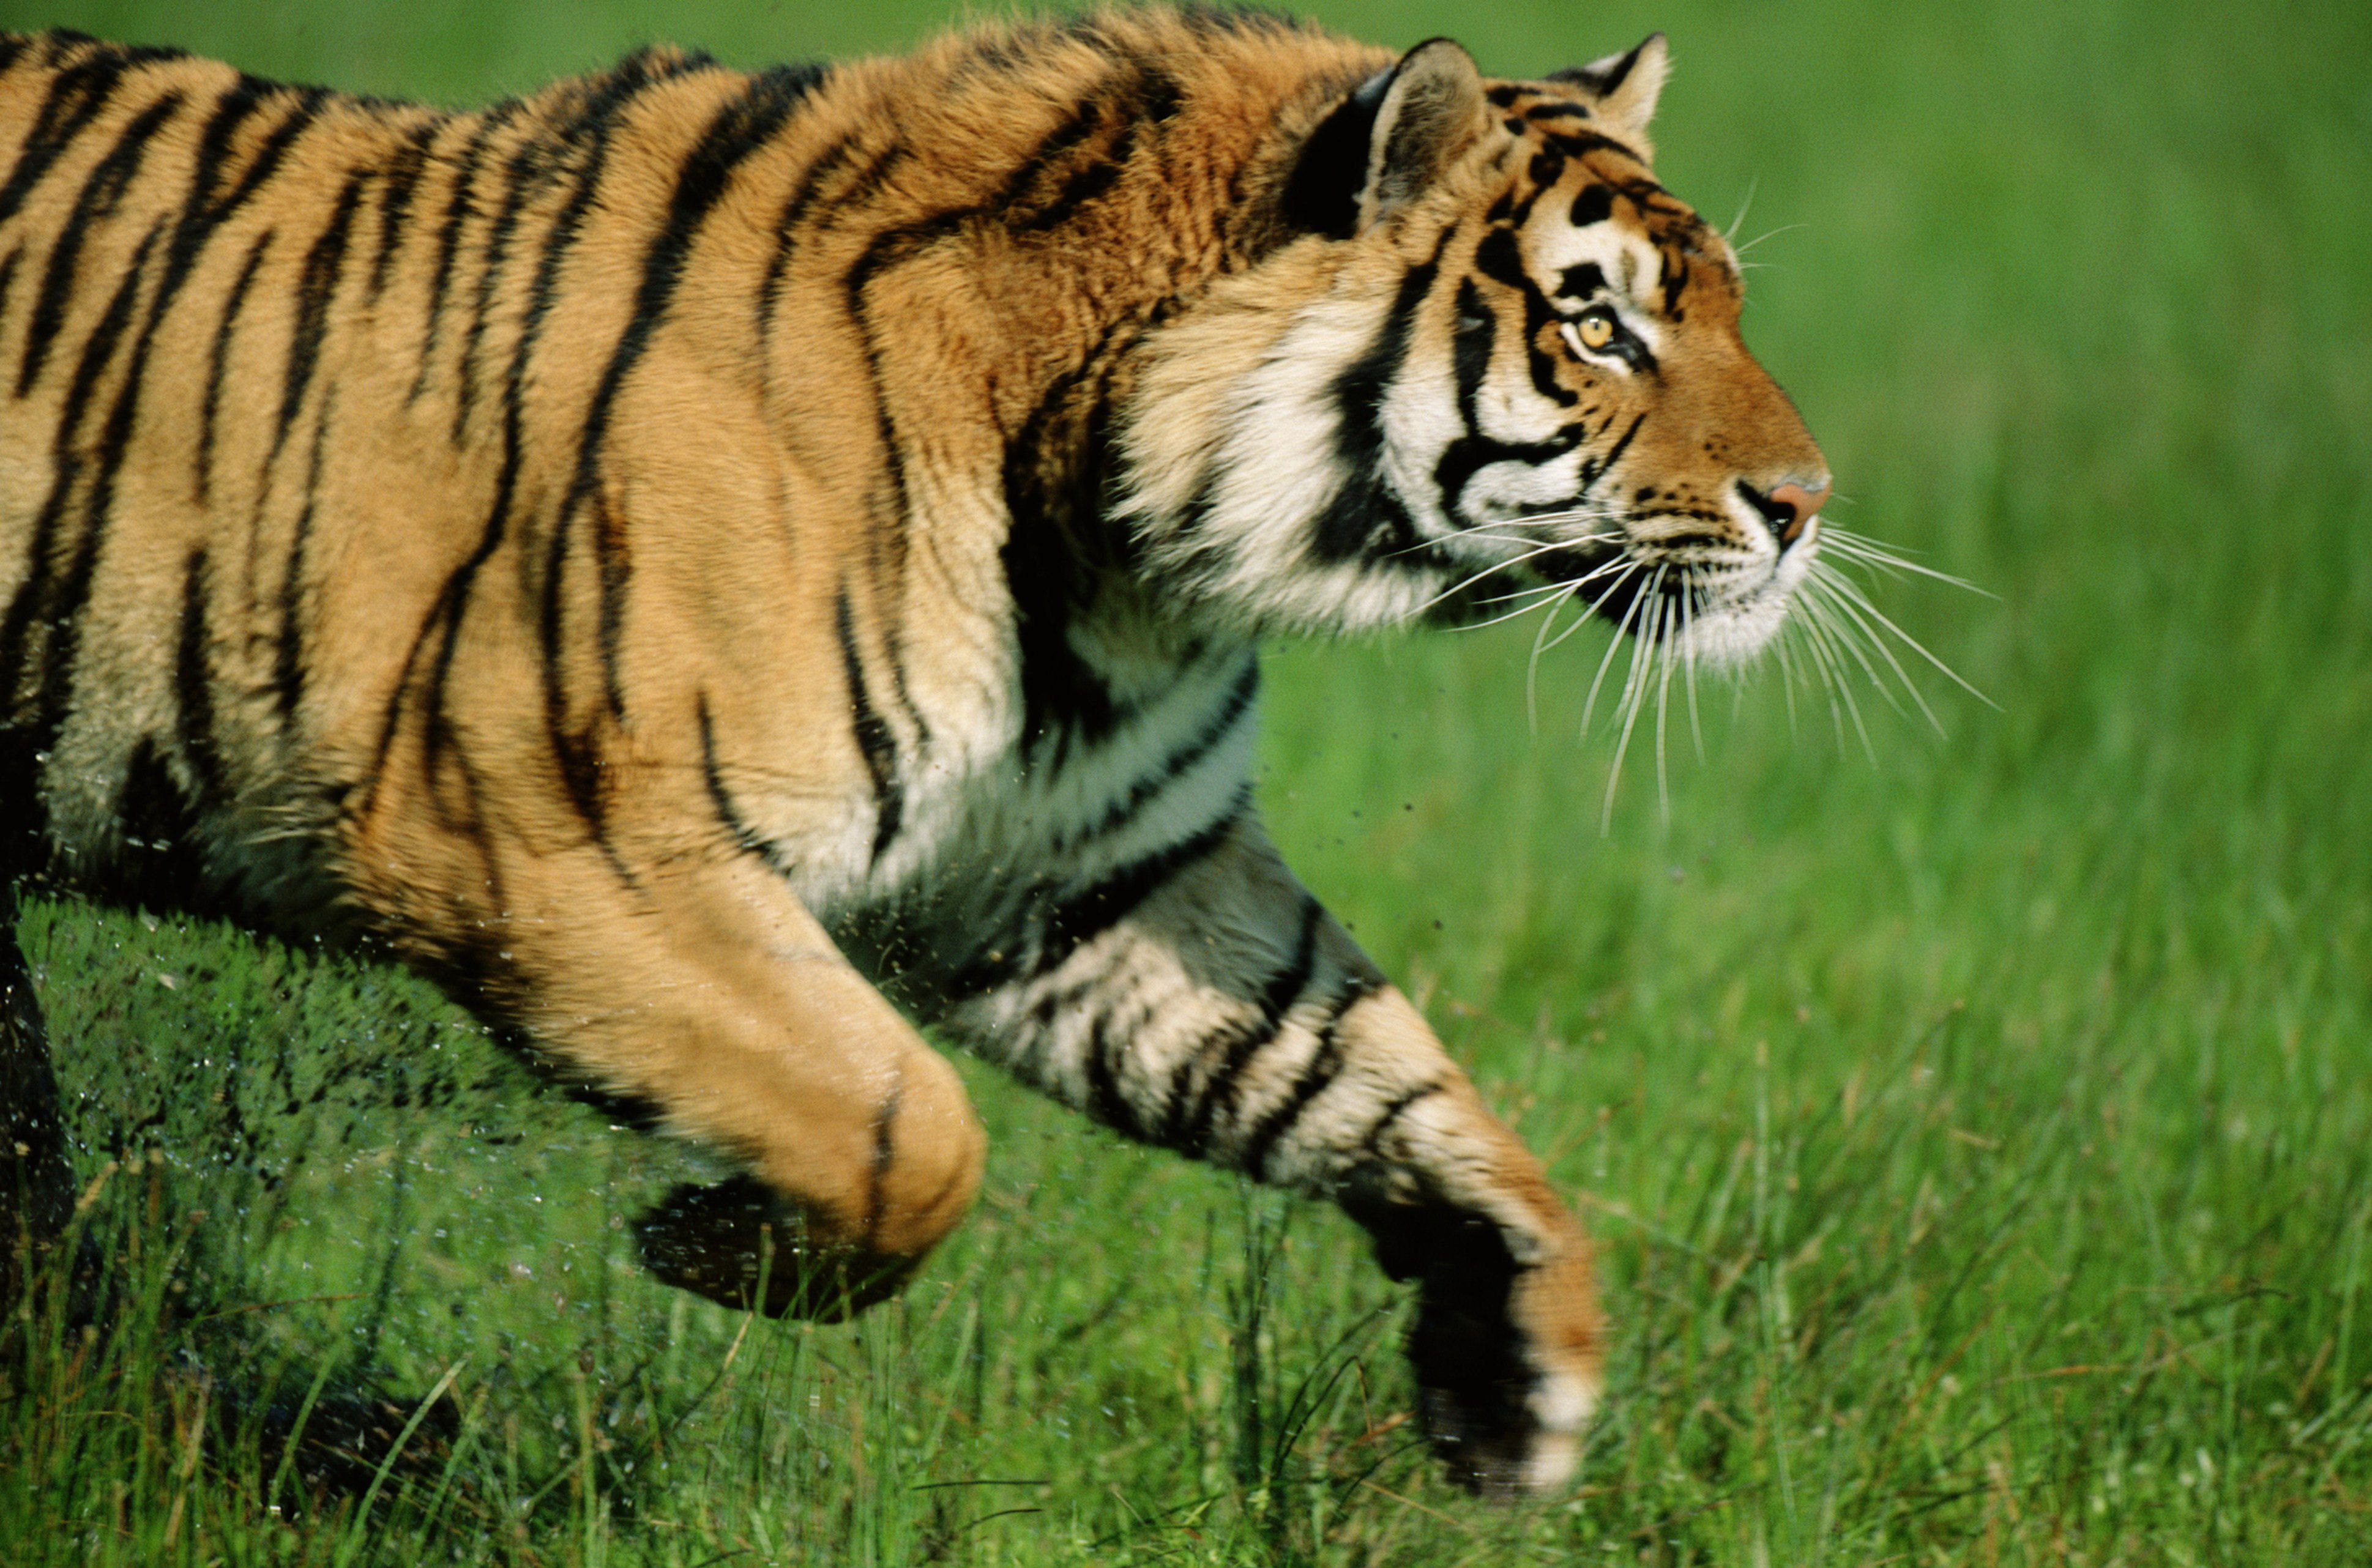 A tiger, not pictured, reportedly attacked and killed a zookeeper at the Terra Natura animal park in...